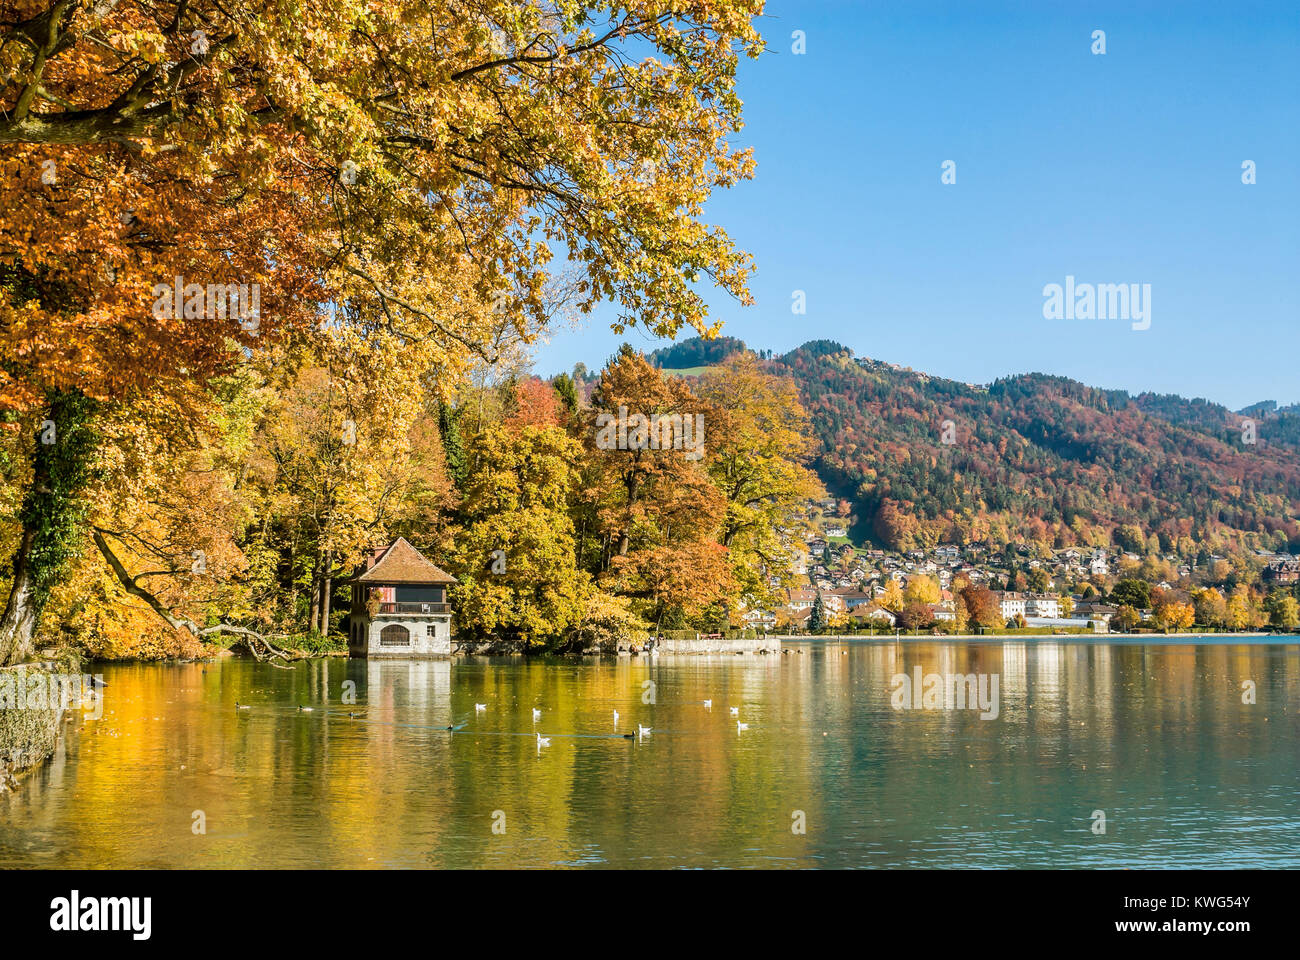 Herbstlandschaft am Fluss Aare und Thuner See, Wallis, Schweiz | Autumn at Aare River and Lake Thuner, Wallis, Switzerland - Stock Image